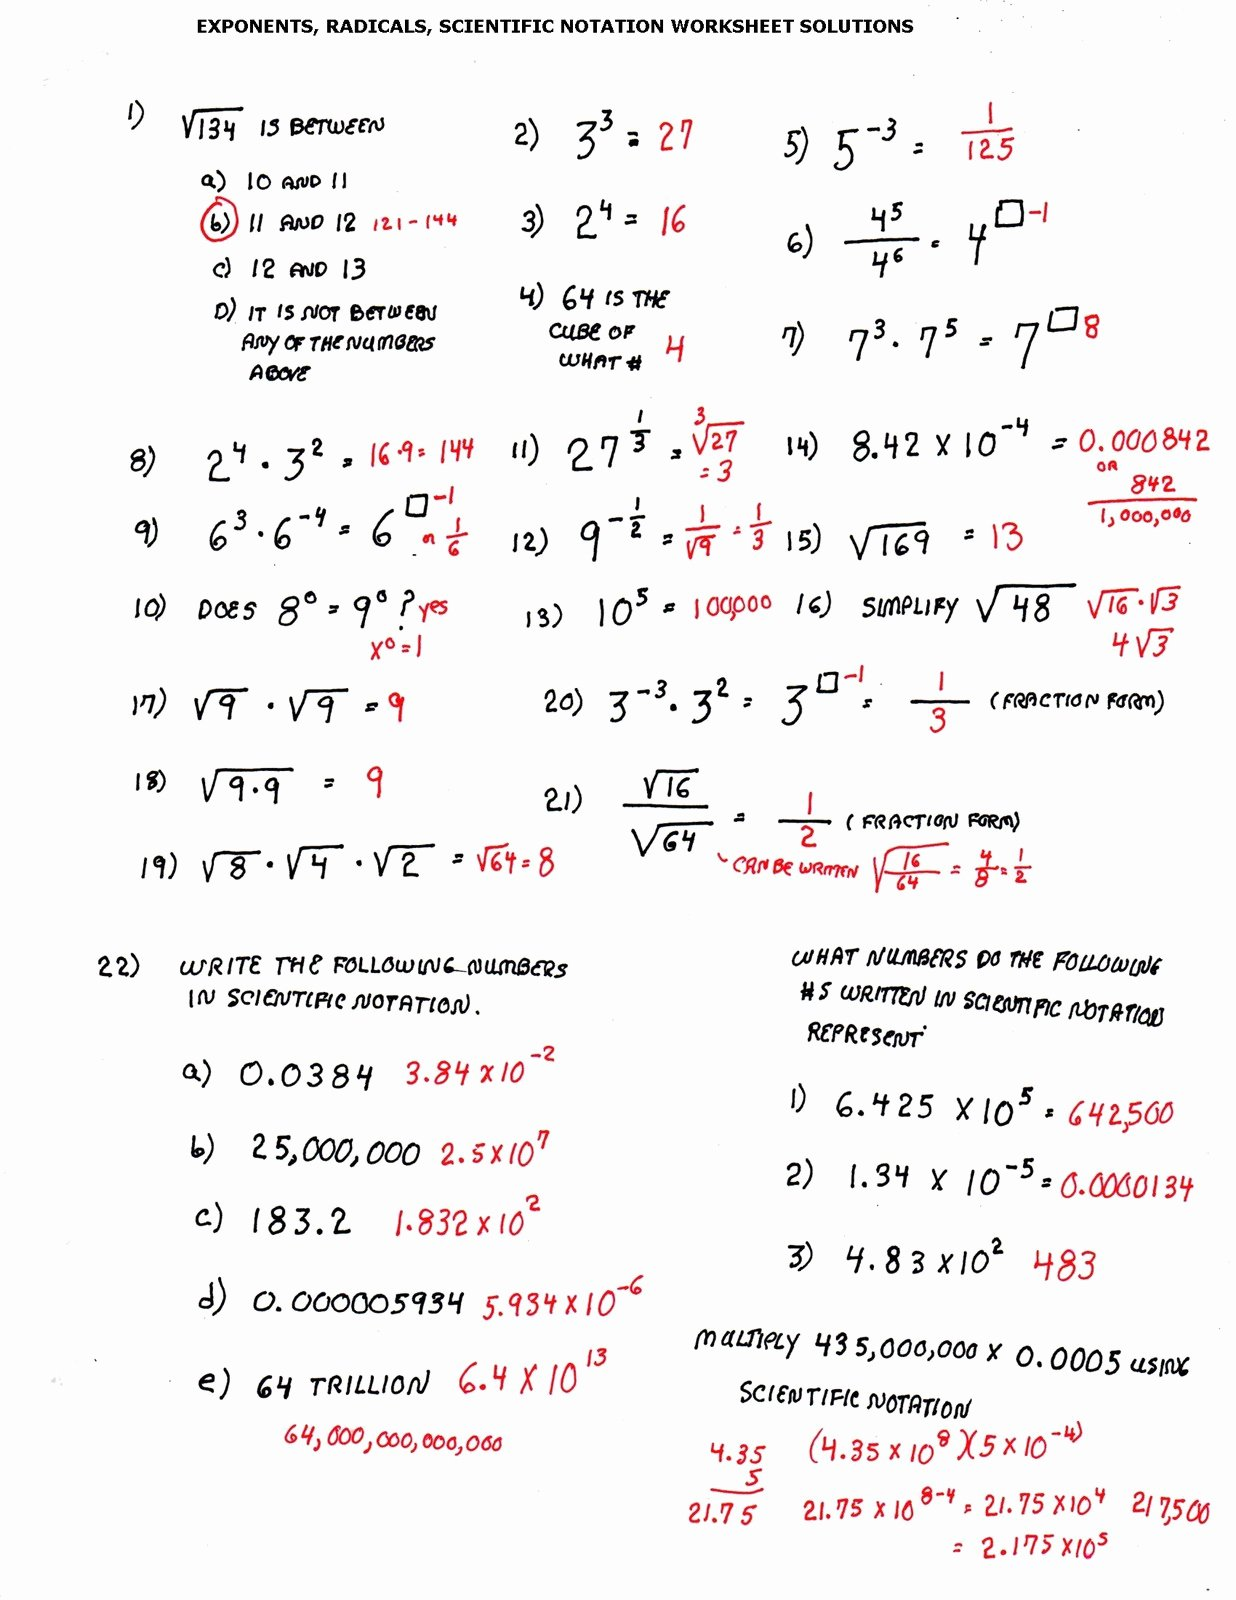 Operations with Scientific Notation Worksheet Awesome Cobb Adult Ed Math solutions to Last 3 Worksheets